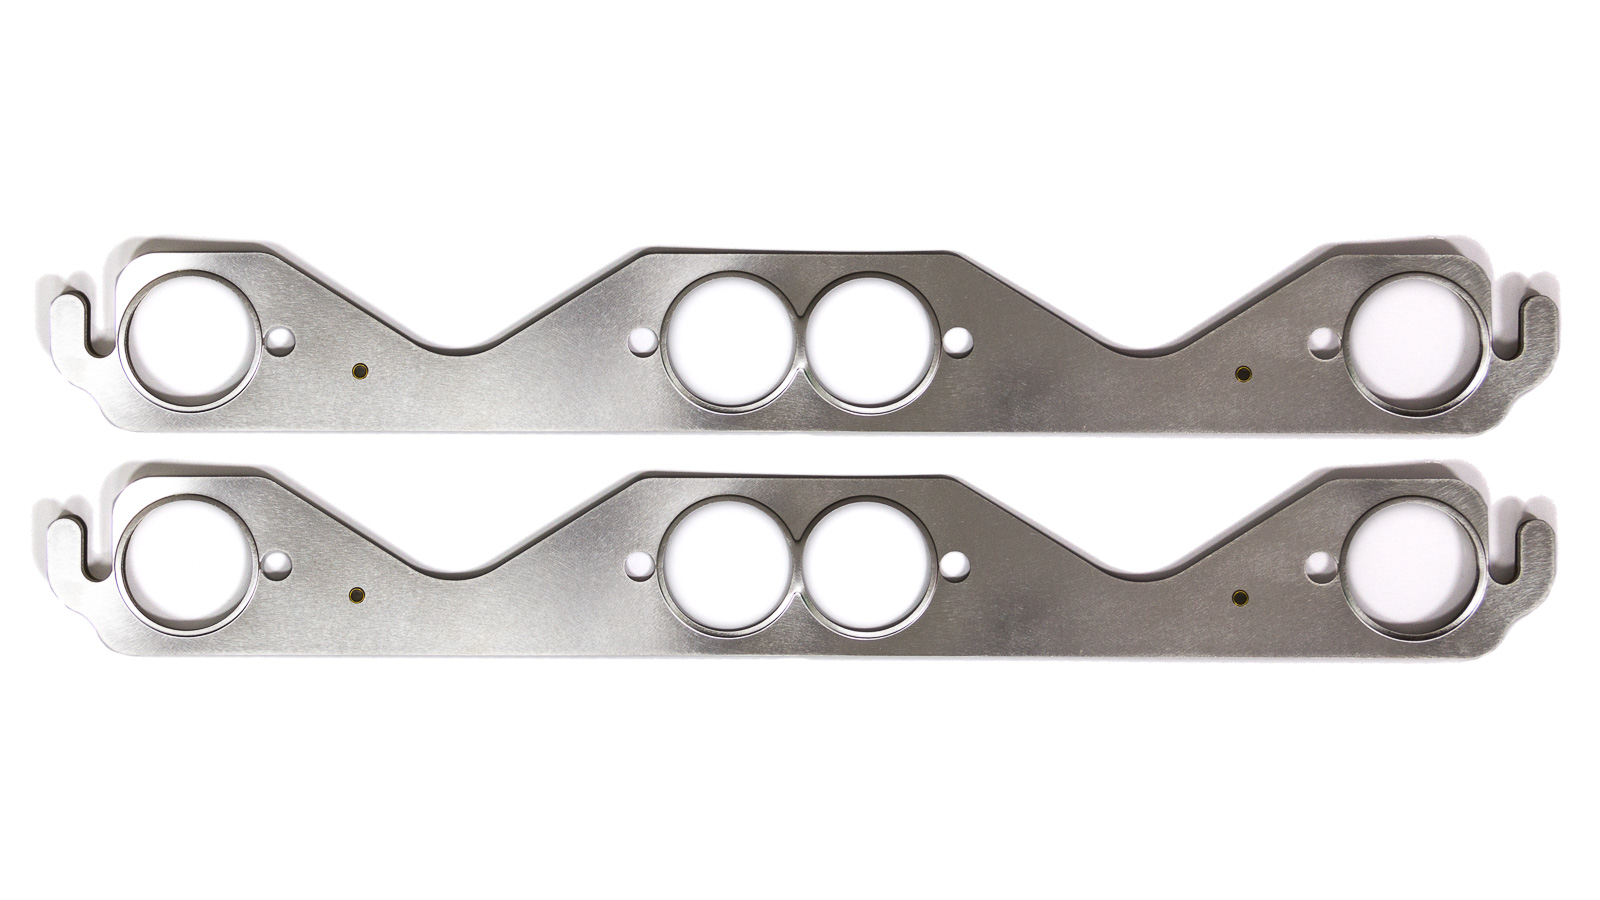 Pack of 2 Cometic Gasket C5852-030 MLS Exhaust Gasket for Ford 4.6//5.4L 3V